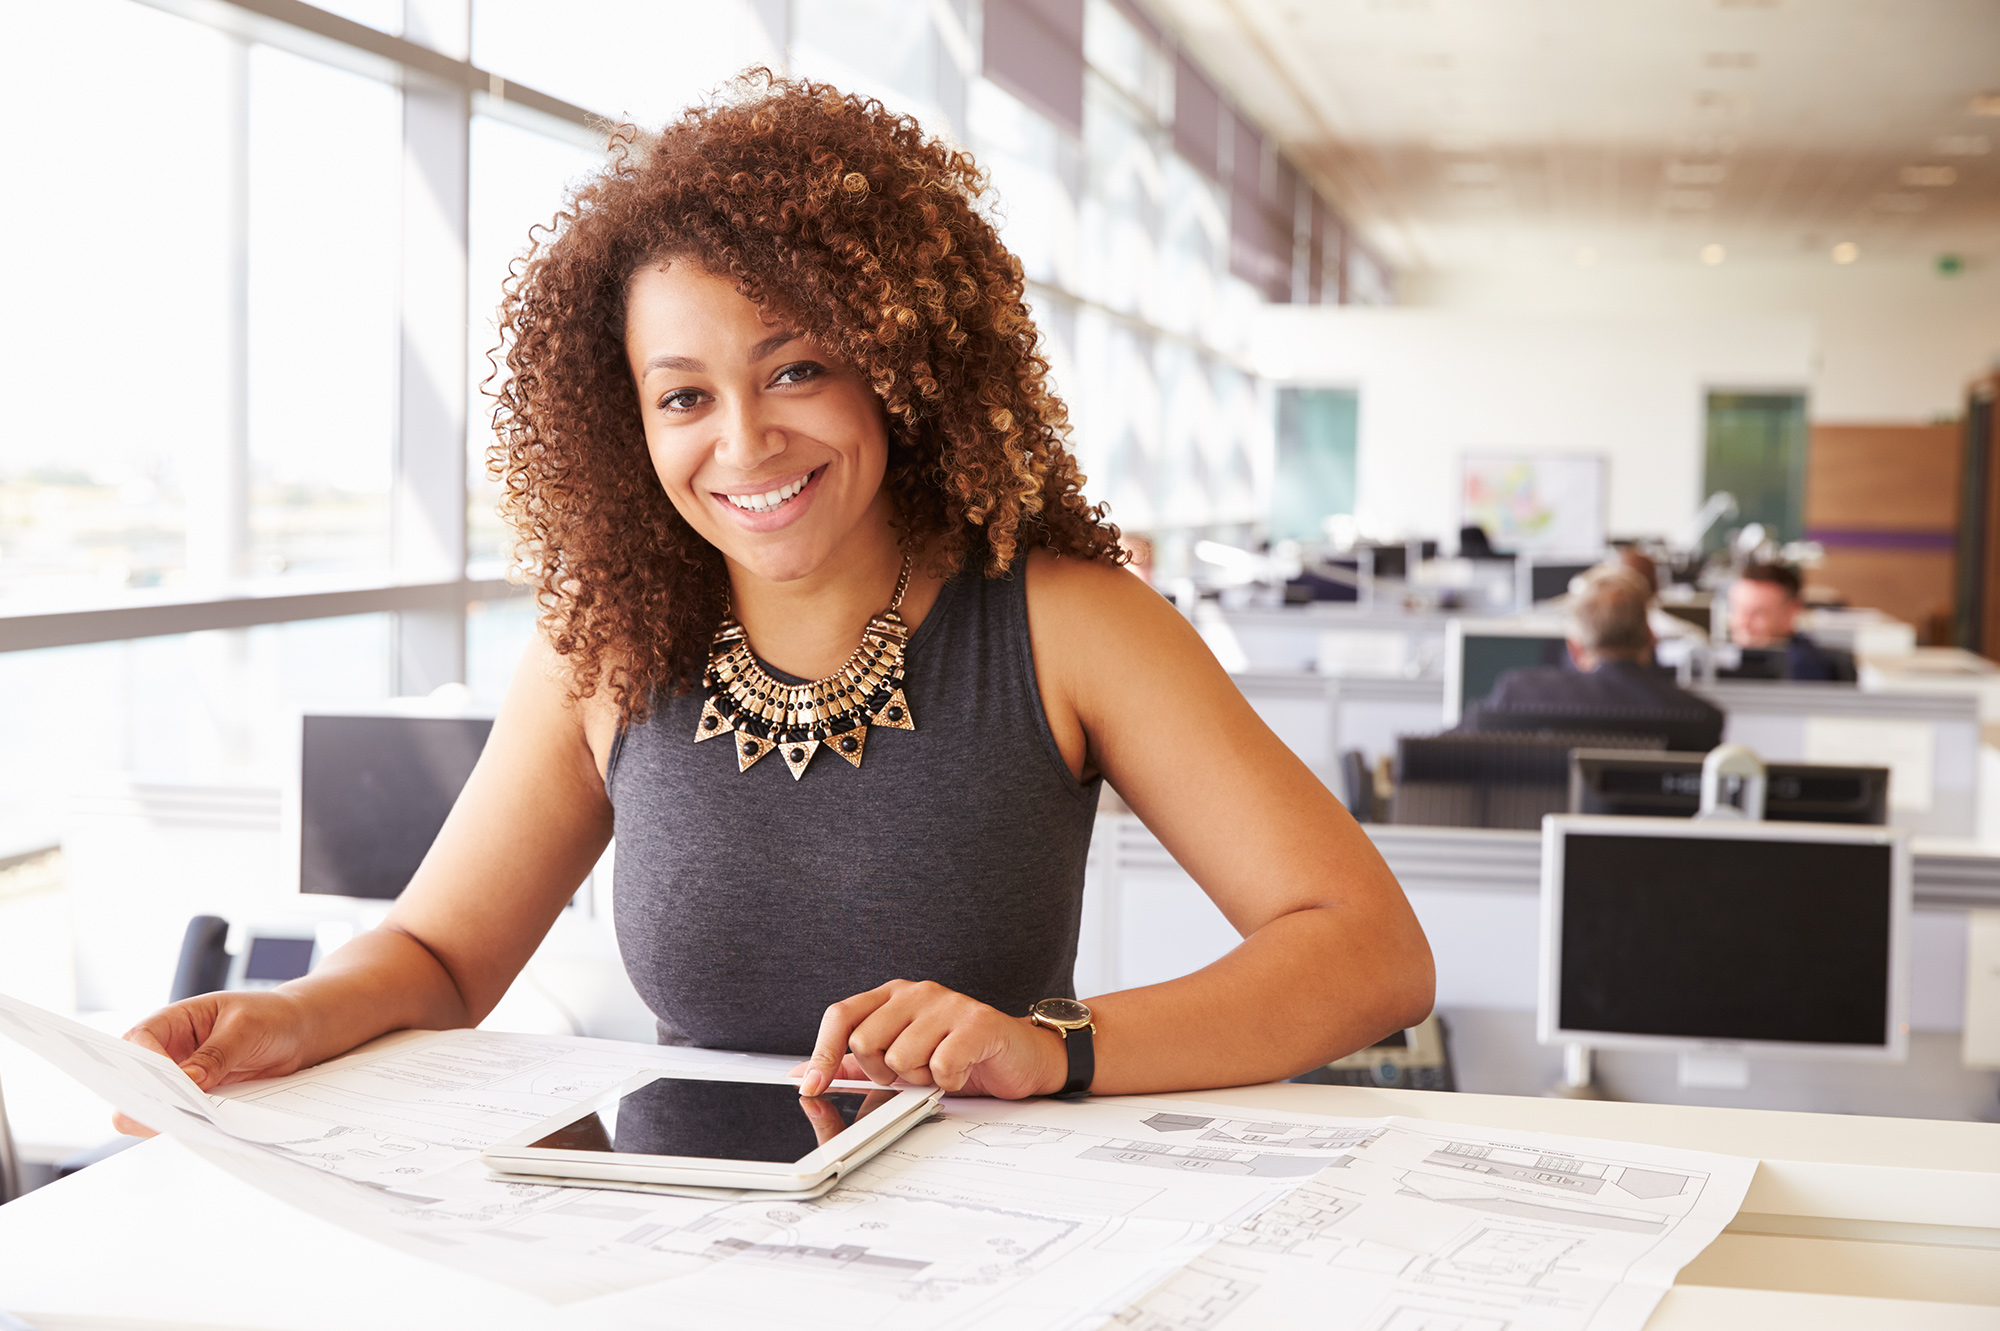 We Insure Franchise Ownership a Great Fit for Female Entrepreneurs Image